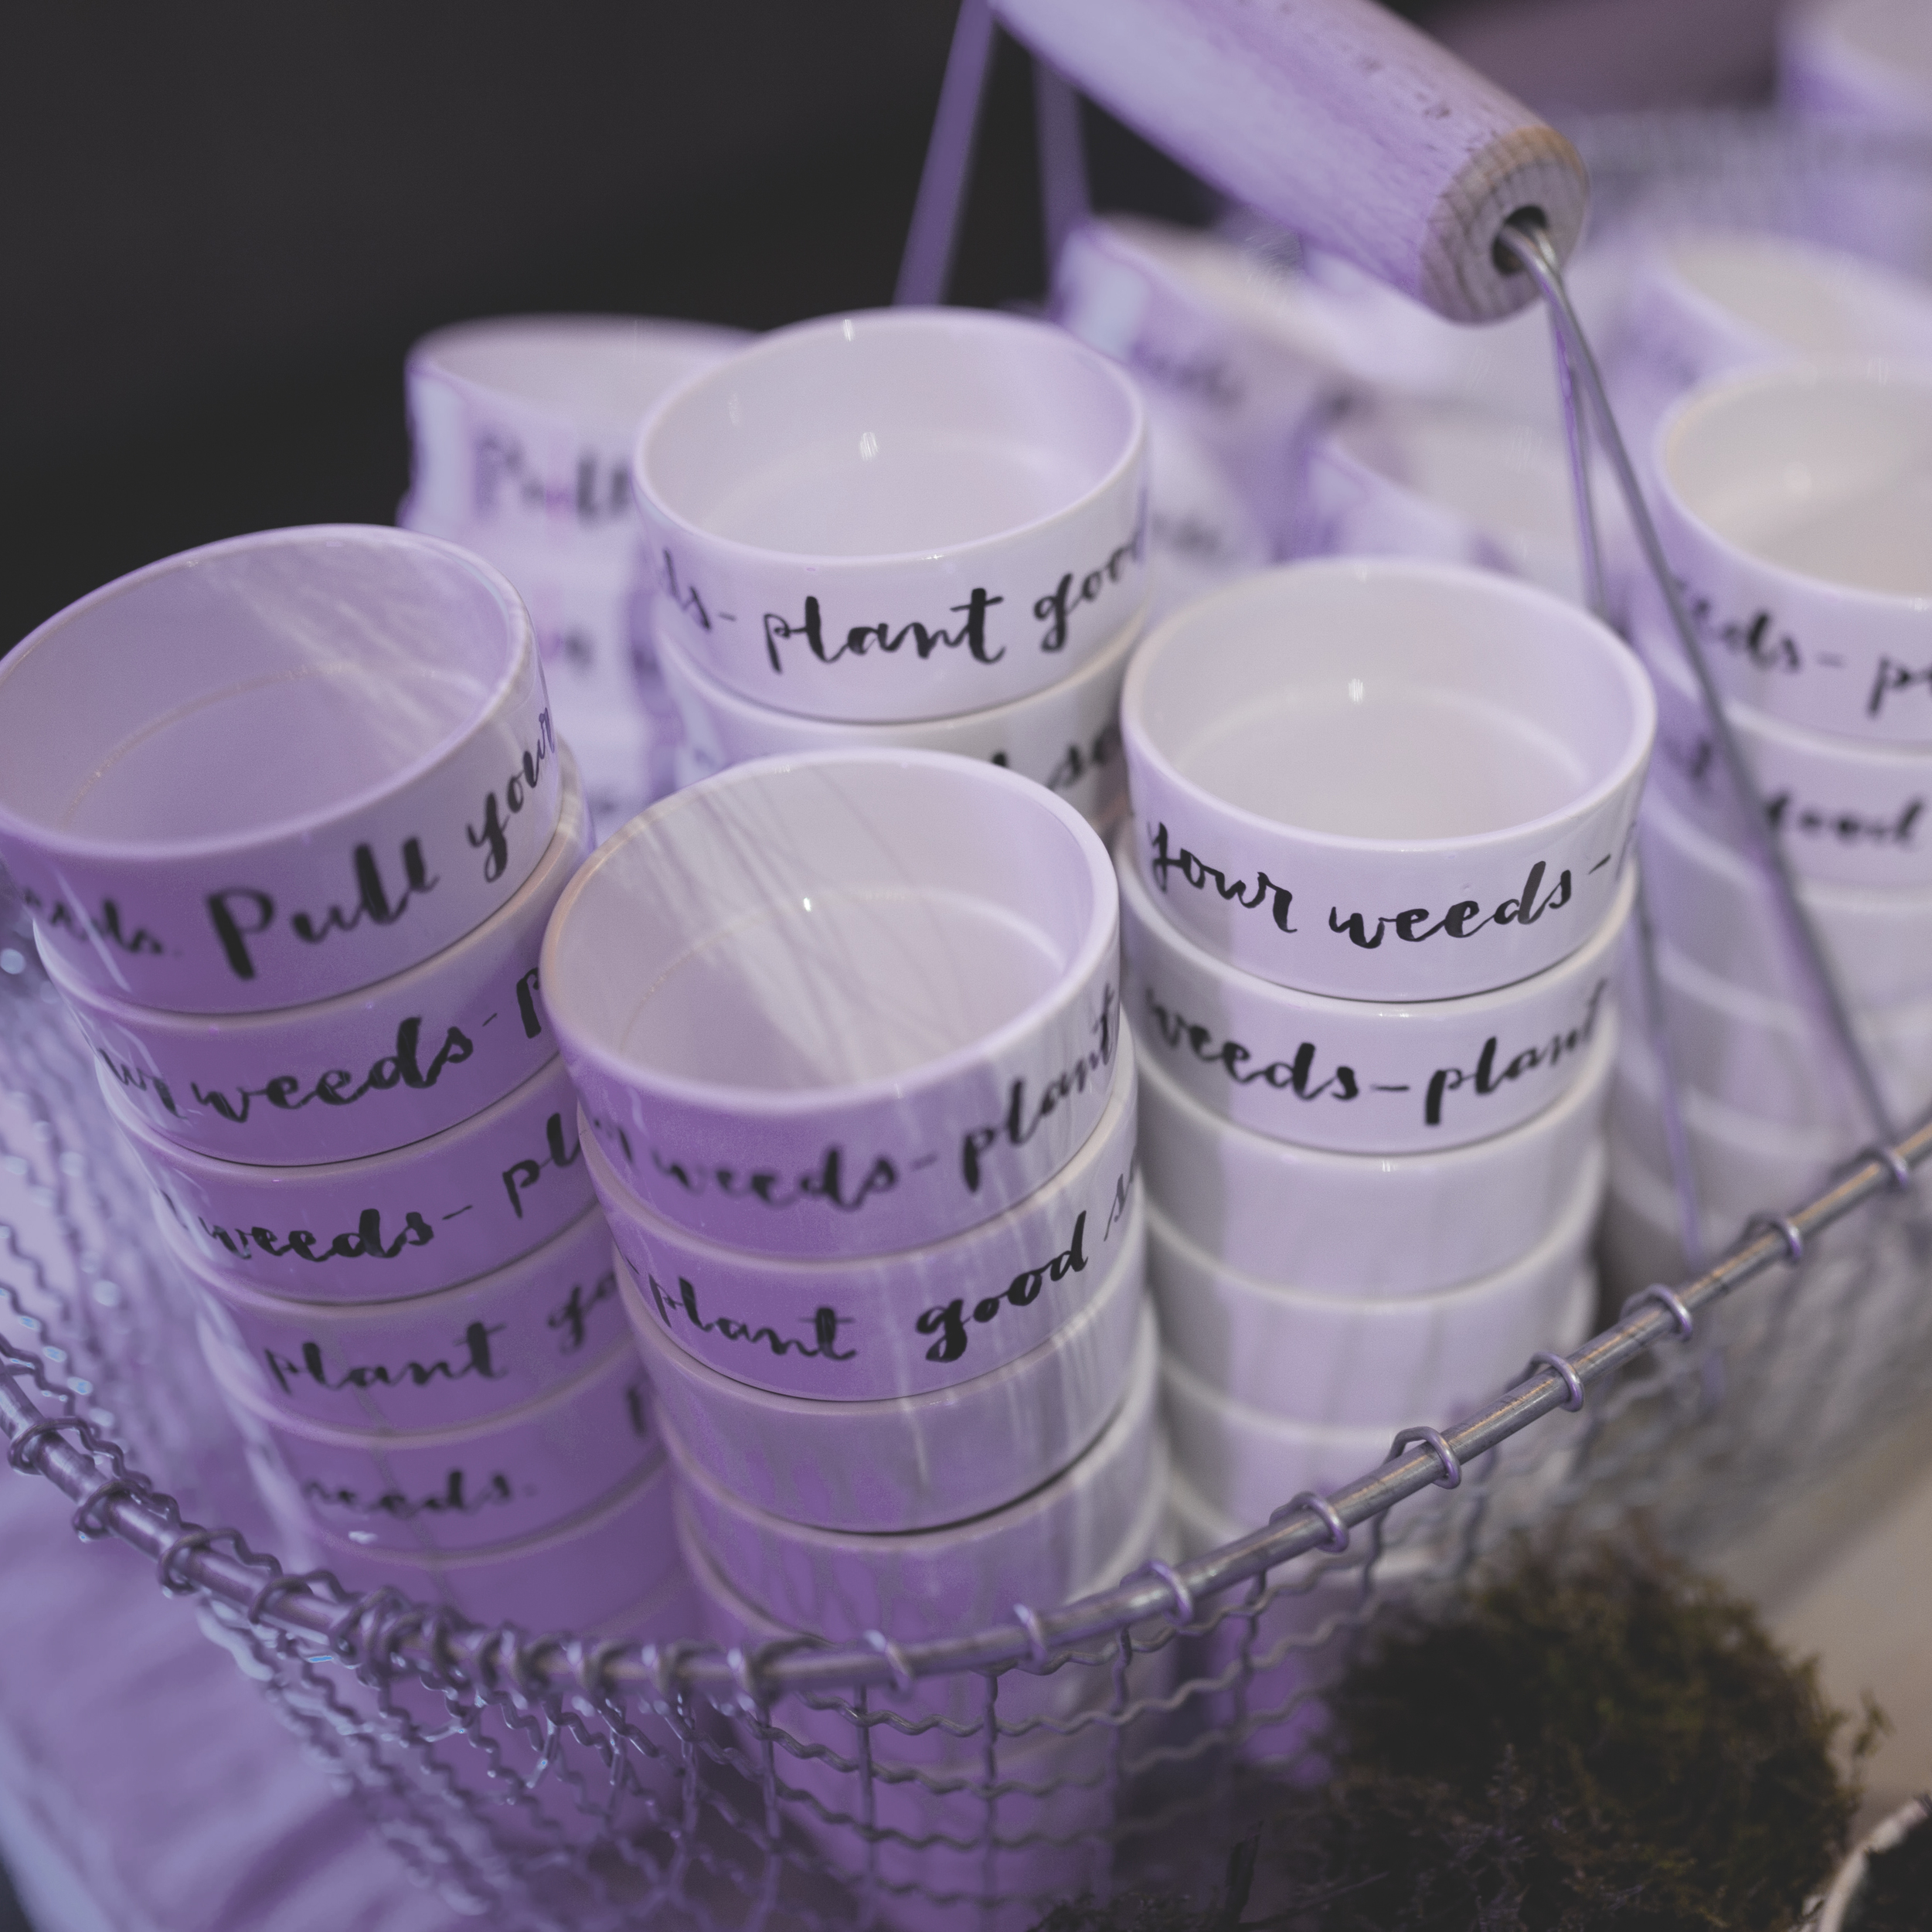 Personalised plant pots at Google's Campus London 4th Birthday event, for Quill London and Heaps & Stacks.